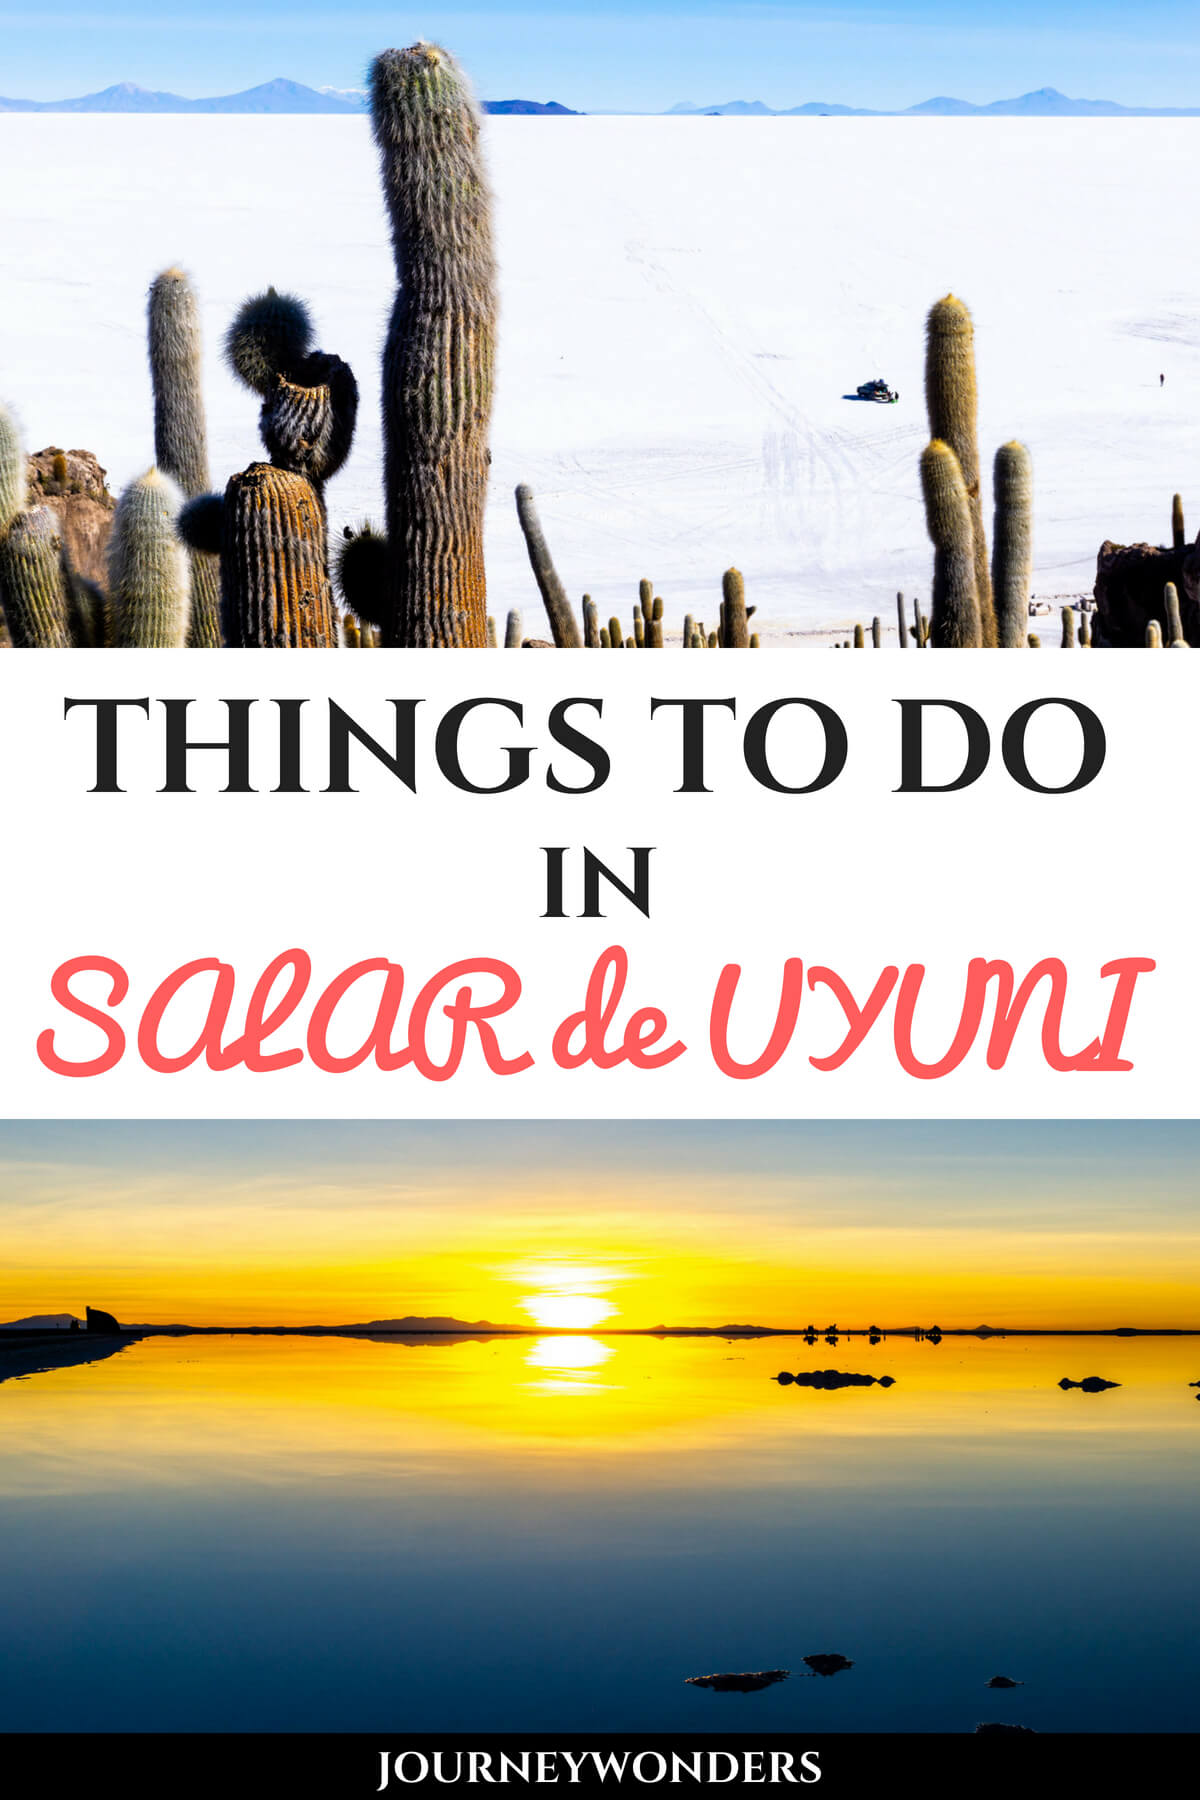 Planning a trip to the Salar de Uyuni in Bolivia? Here's some amazing travel tips to select the best day tour and enjoy the Salt Desert to the fullest! Who's ready to ride a T-Rex my wonder friends? #Uyuni #Bolivia #SalardeUyuni #SouthAmerica